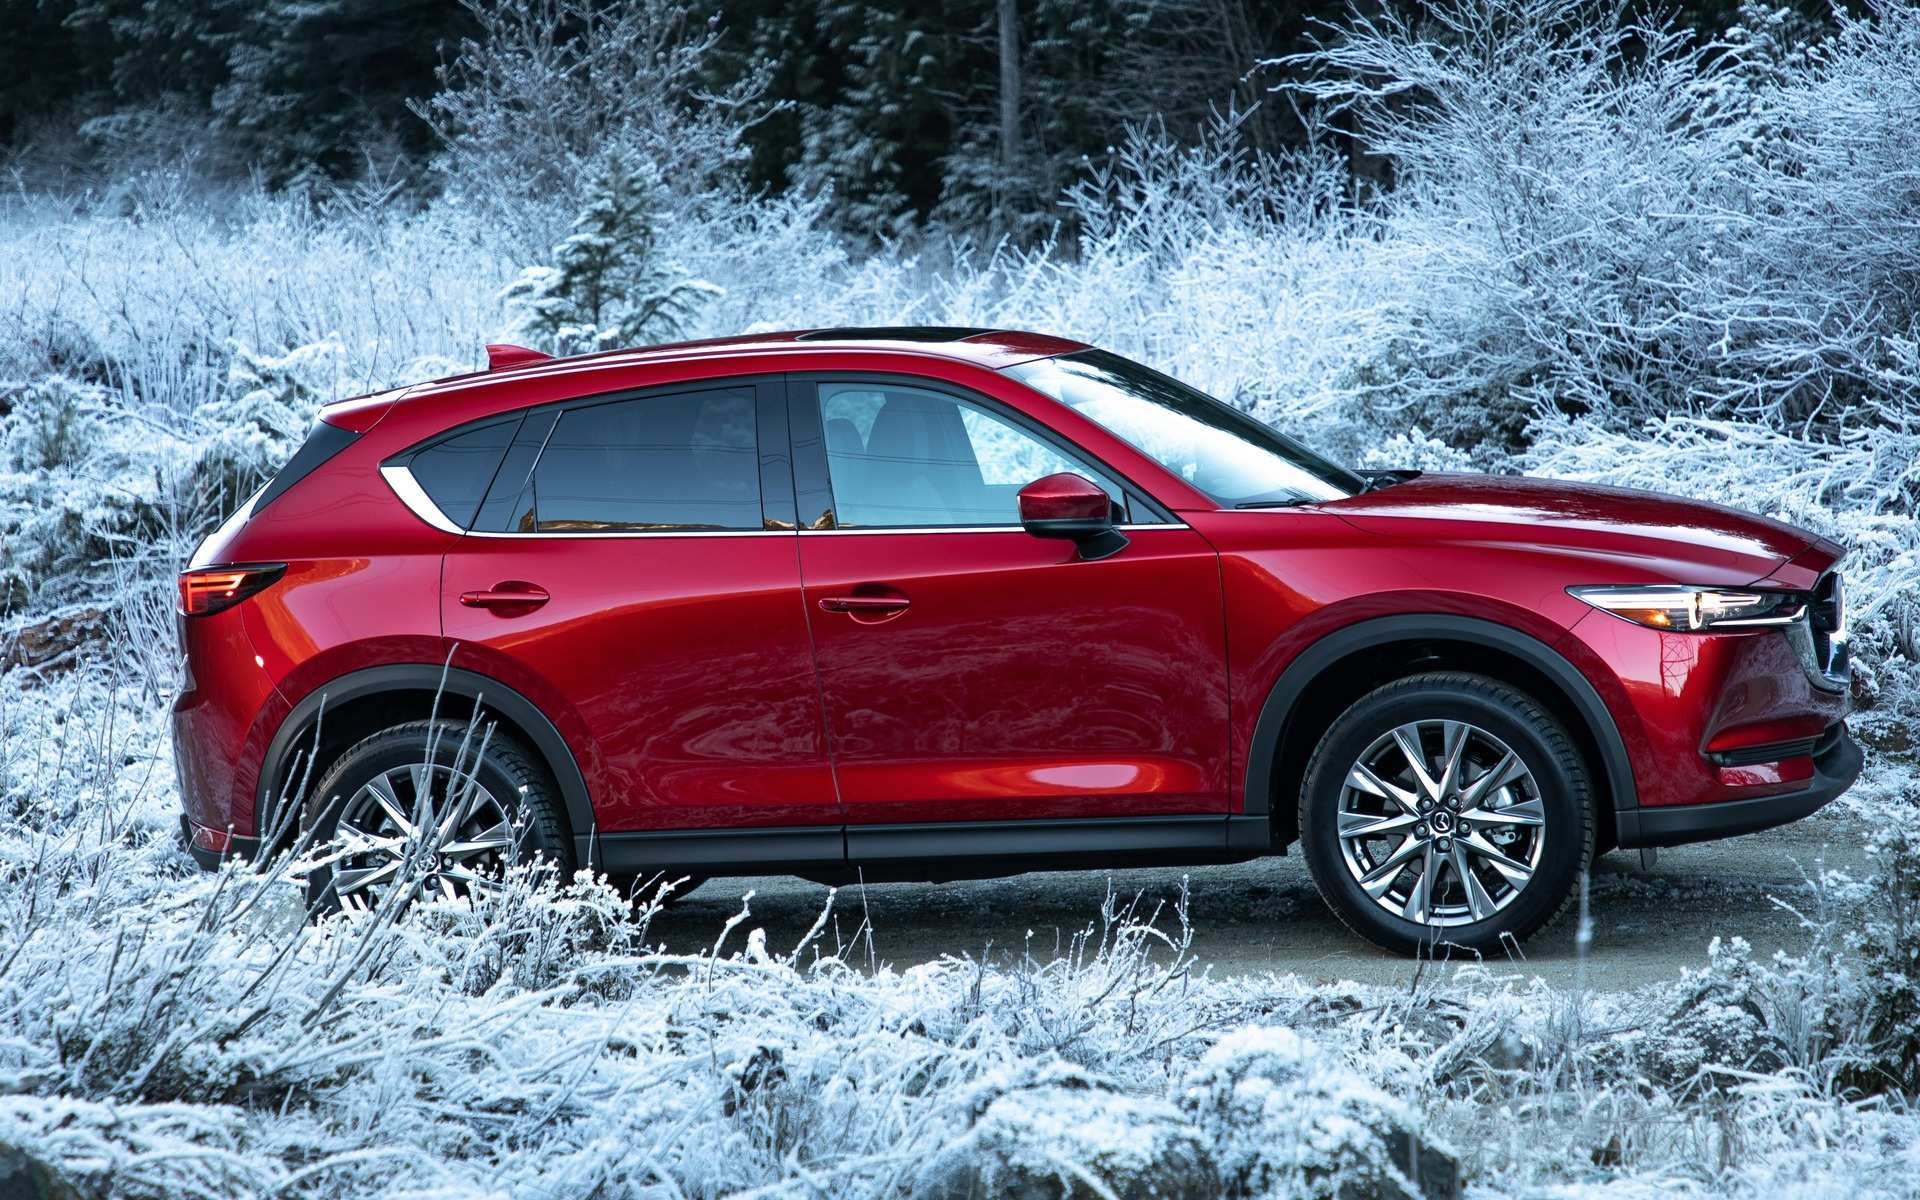 15 Concept of Best 2019 Mazda Truck Usa First Drive Exterior and Interior for Best 2019 Mazda Truck Usa First Drive